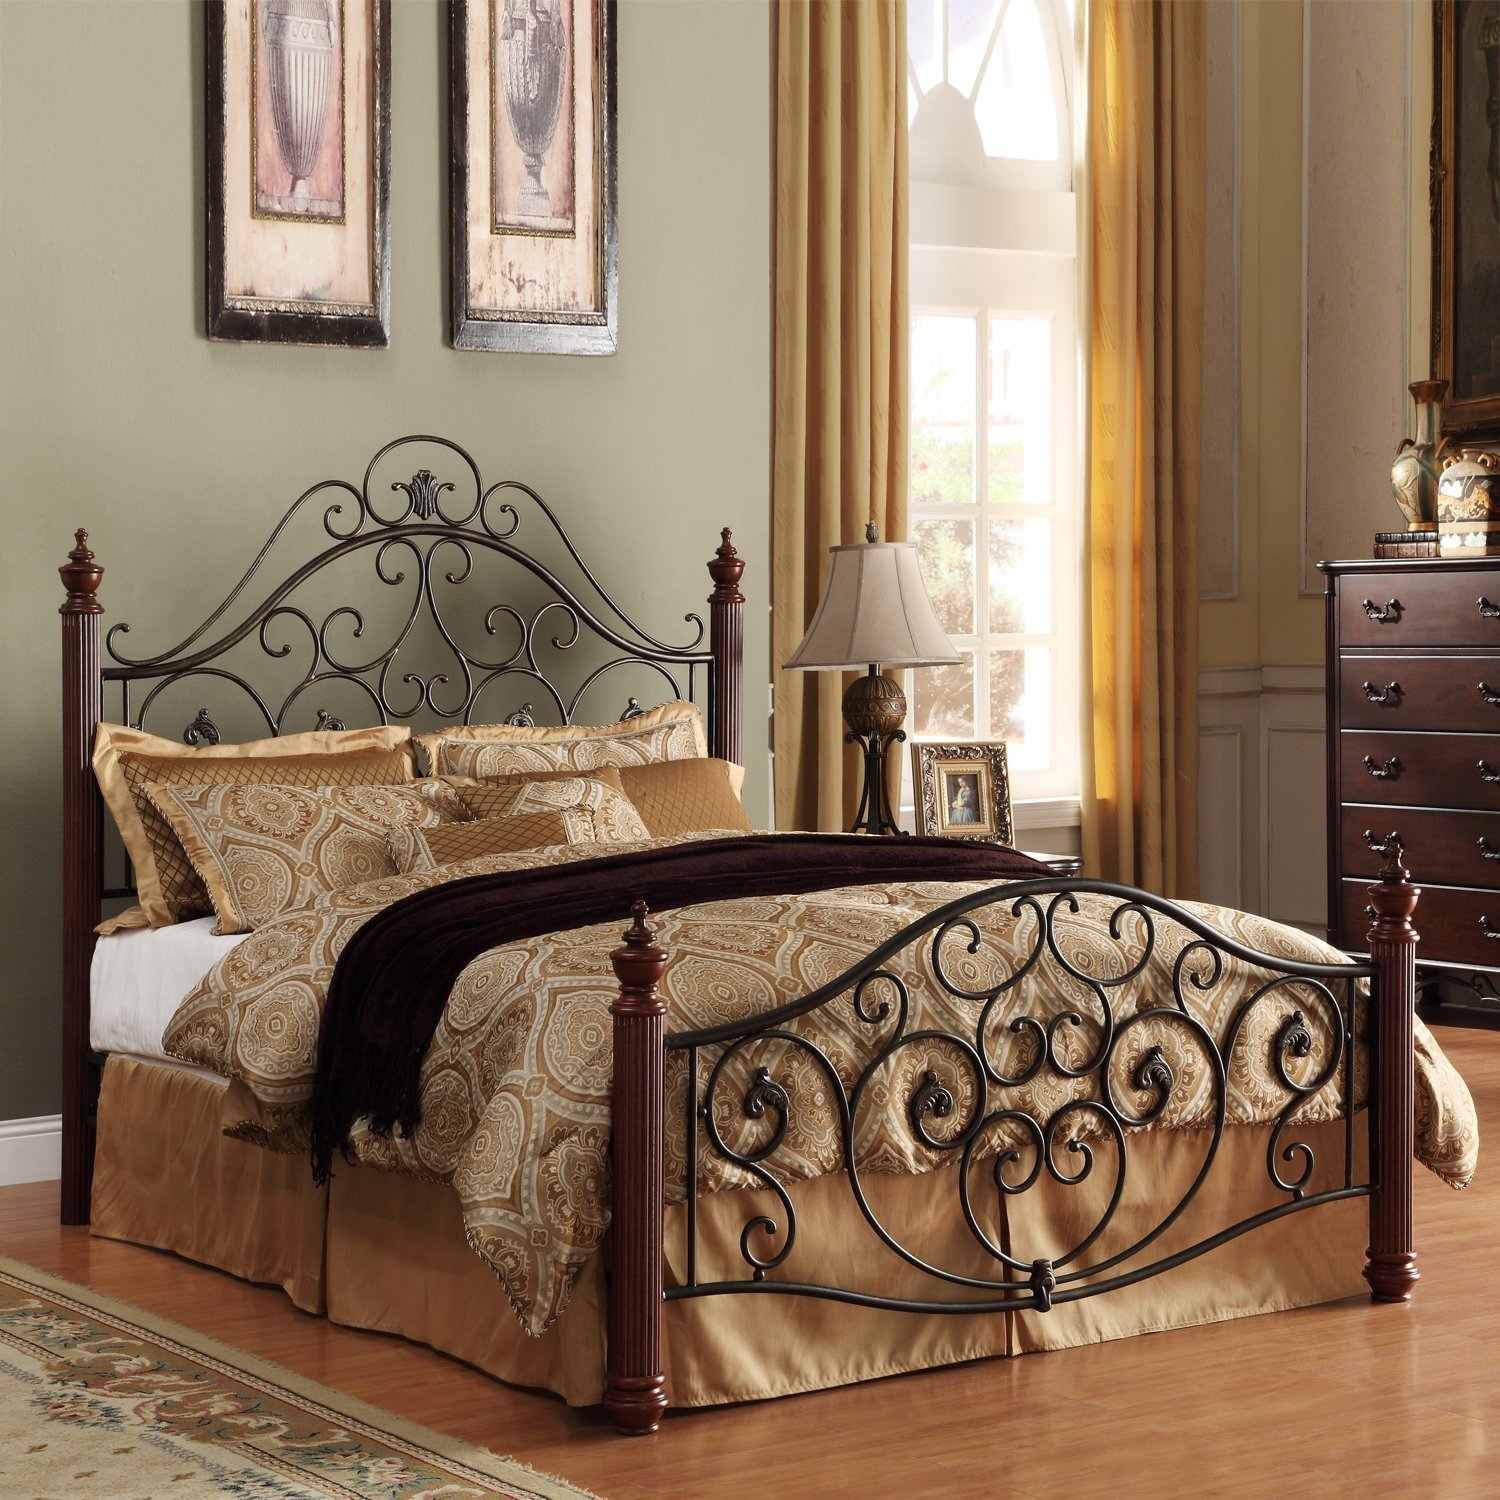 Metro Shop TRIBECCA HOME Madera Graceful Scroll Bronze Iron Metal Queen-sized Bed-Madera Deco Queen Metal Bed